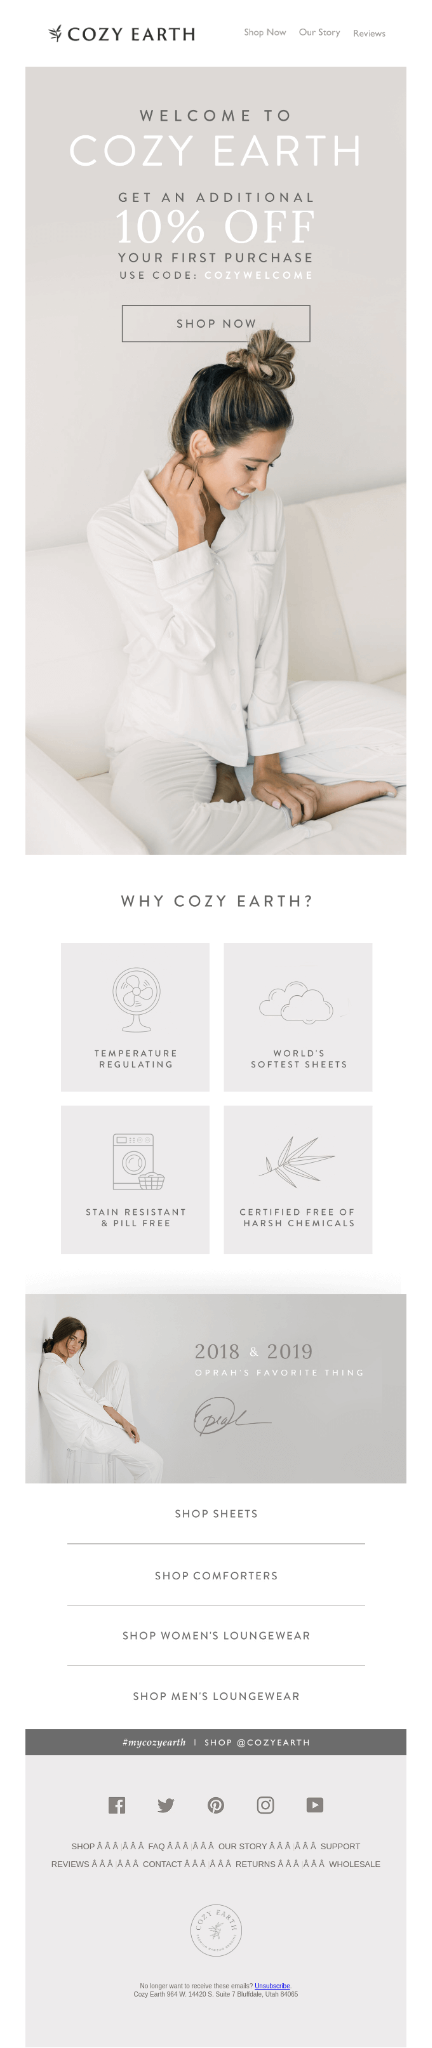 cozy earth discount buyer's journey with email